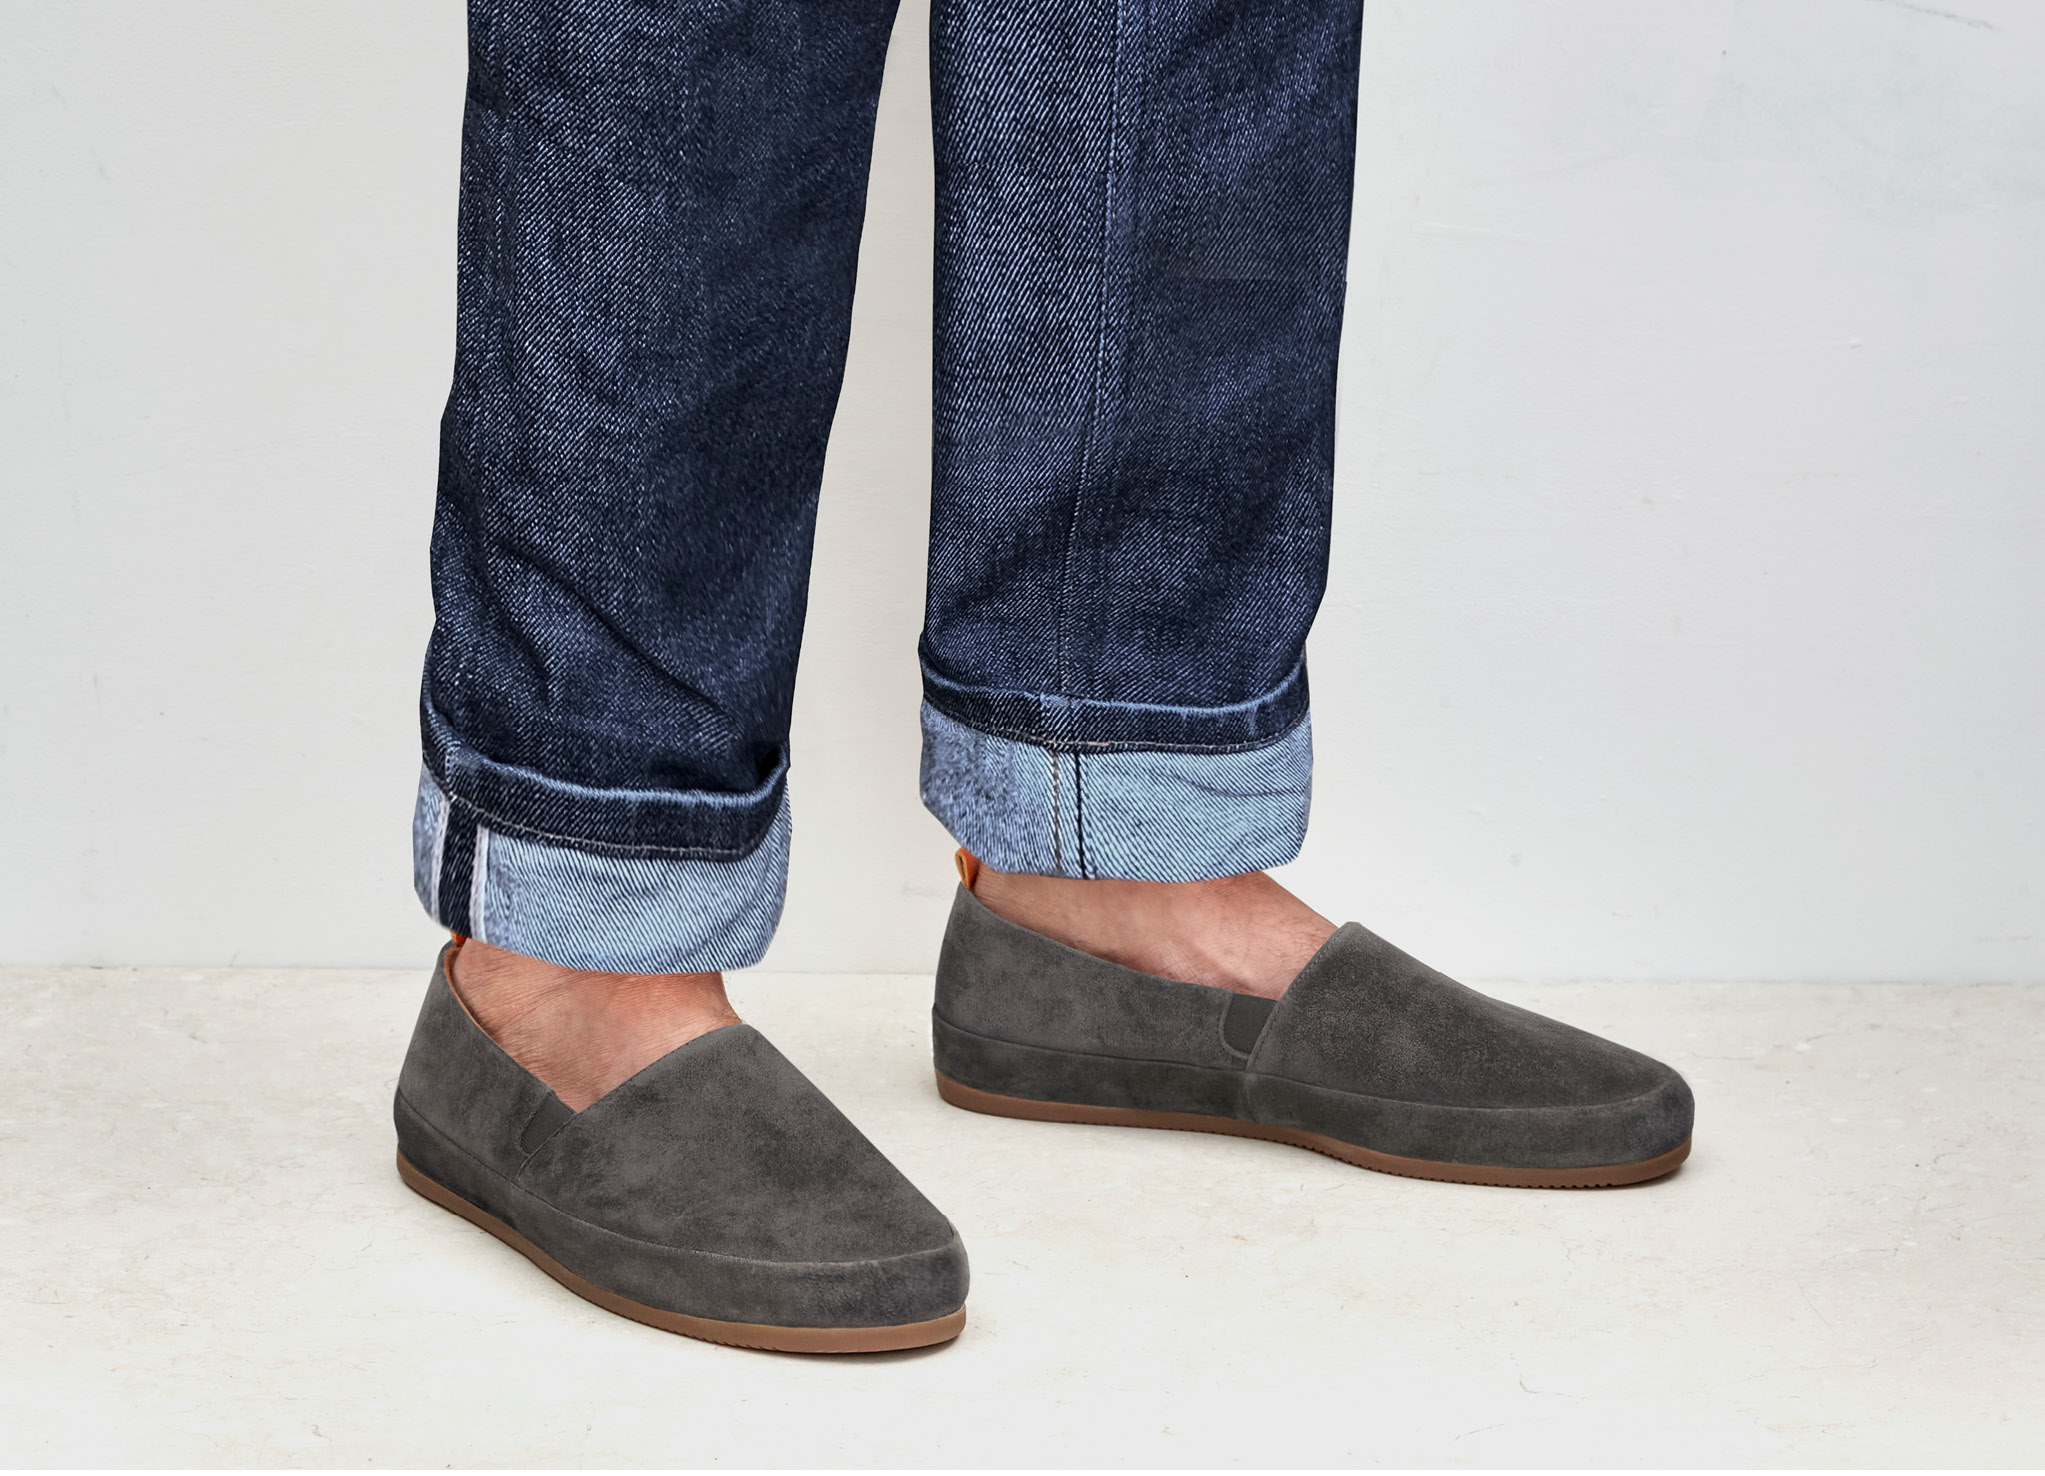 Mens Brown Loafers | MULO shoes | High-quality Italian Suede